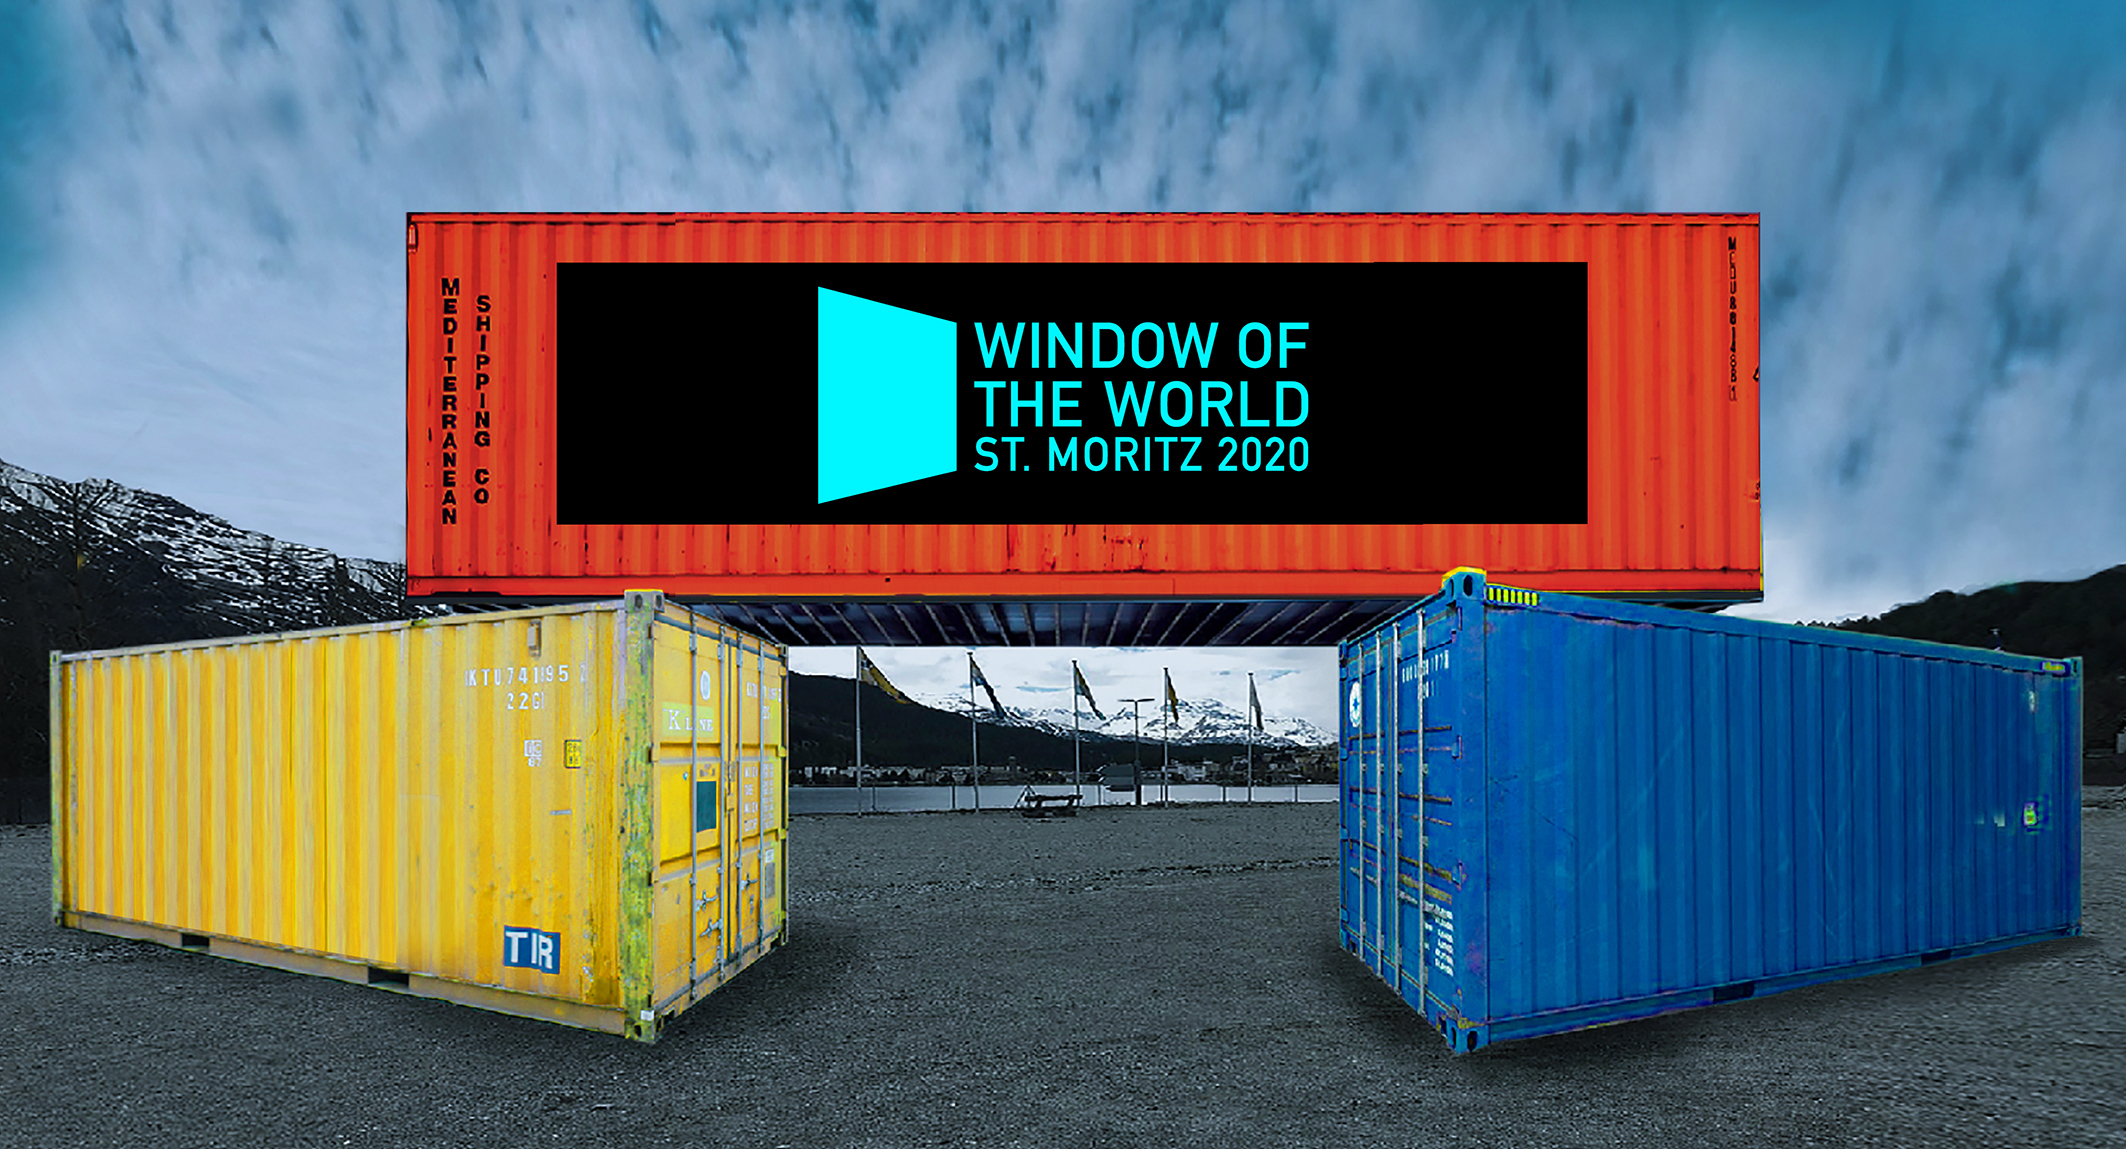 WINDOW OF THE WORLD 2020 - Digital culture, art, music and talks